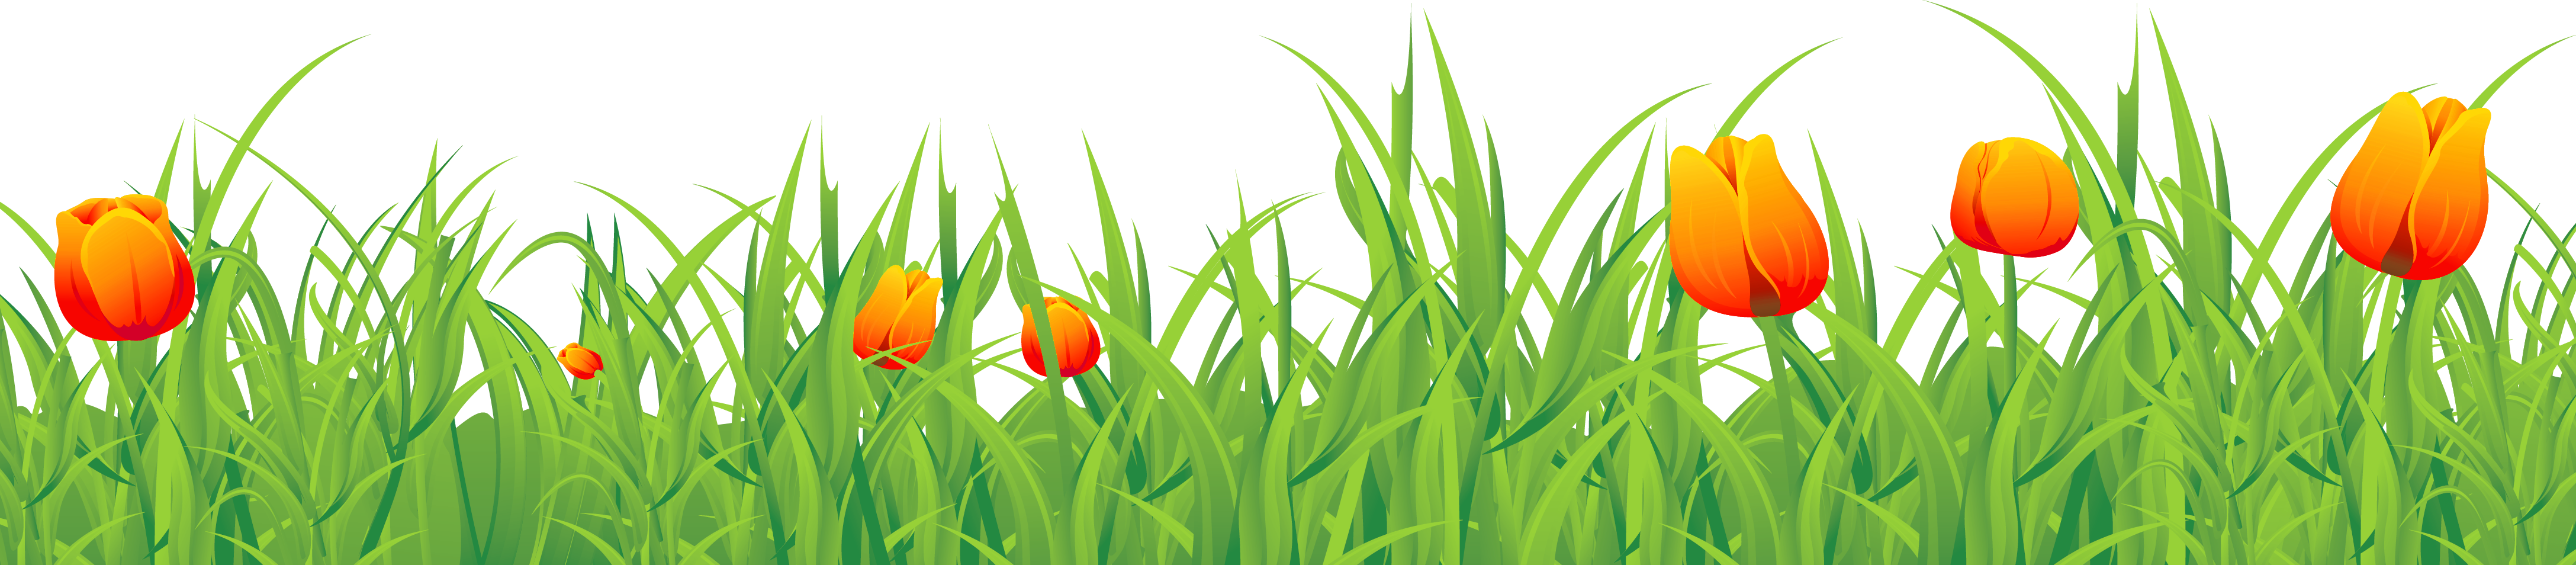 With tulips png places. Clipart grass ground